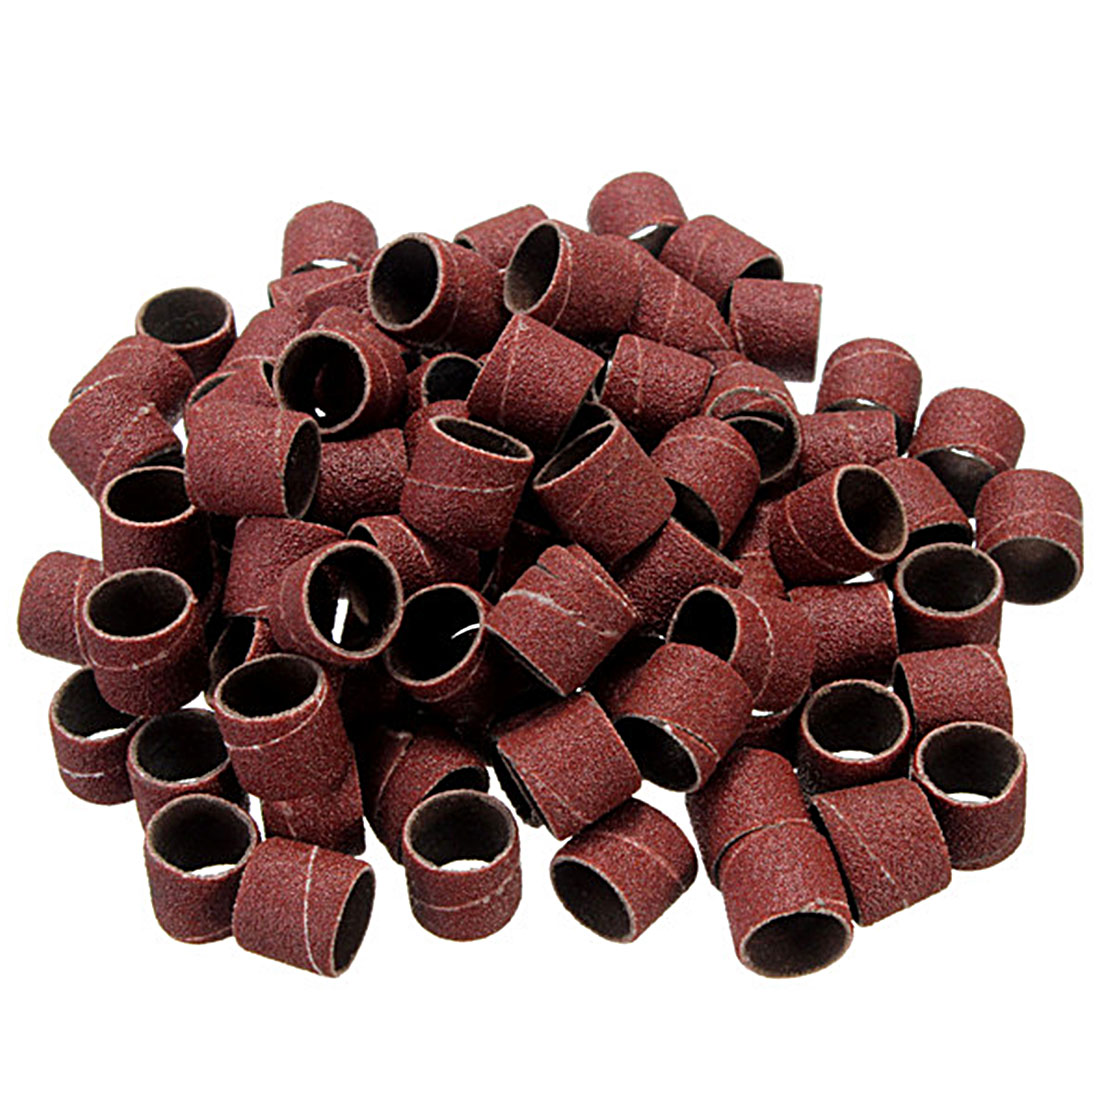 New Rotary Power Tool 102pcs Wood Metal Engraving Electric For Dremel Bit Set Grinding Polish Accessory Bit With 2 Mandrel